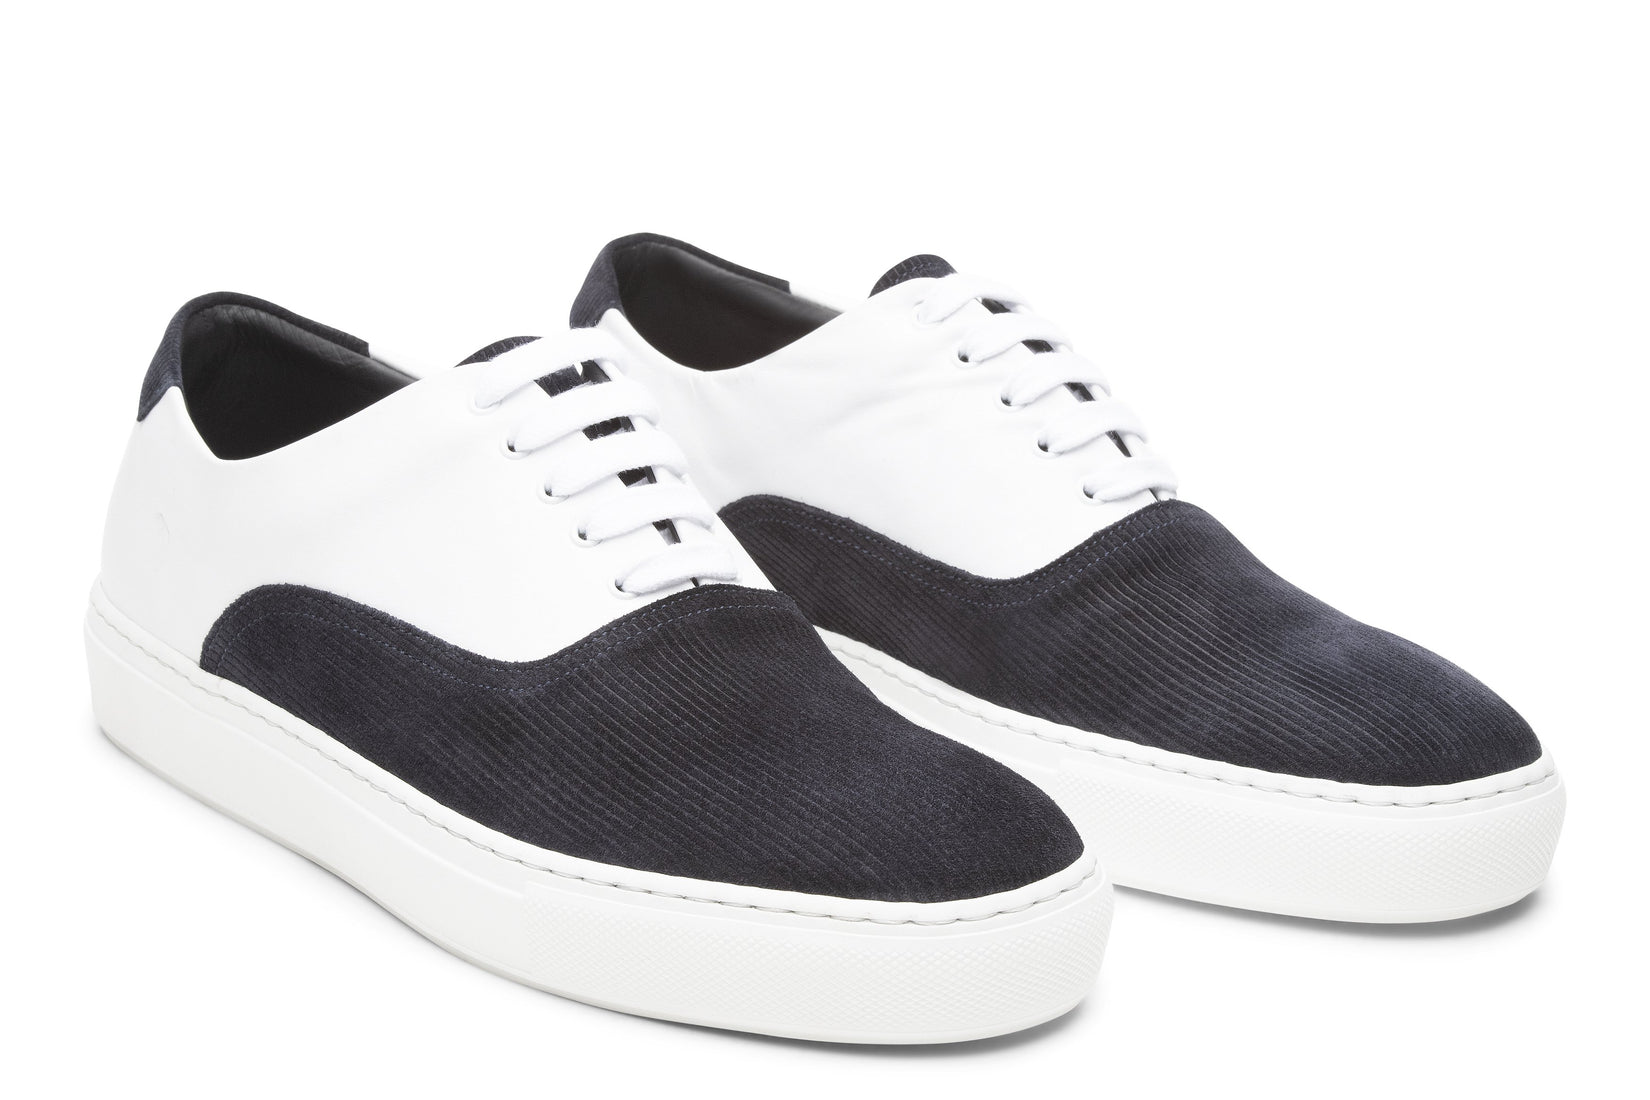 Sunday Two-Tone Skater Sneaker in White/Indigo (FINAL SALE)